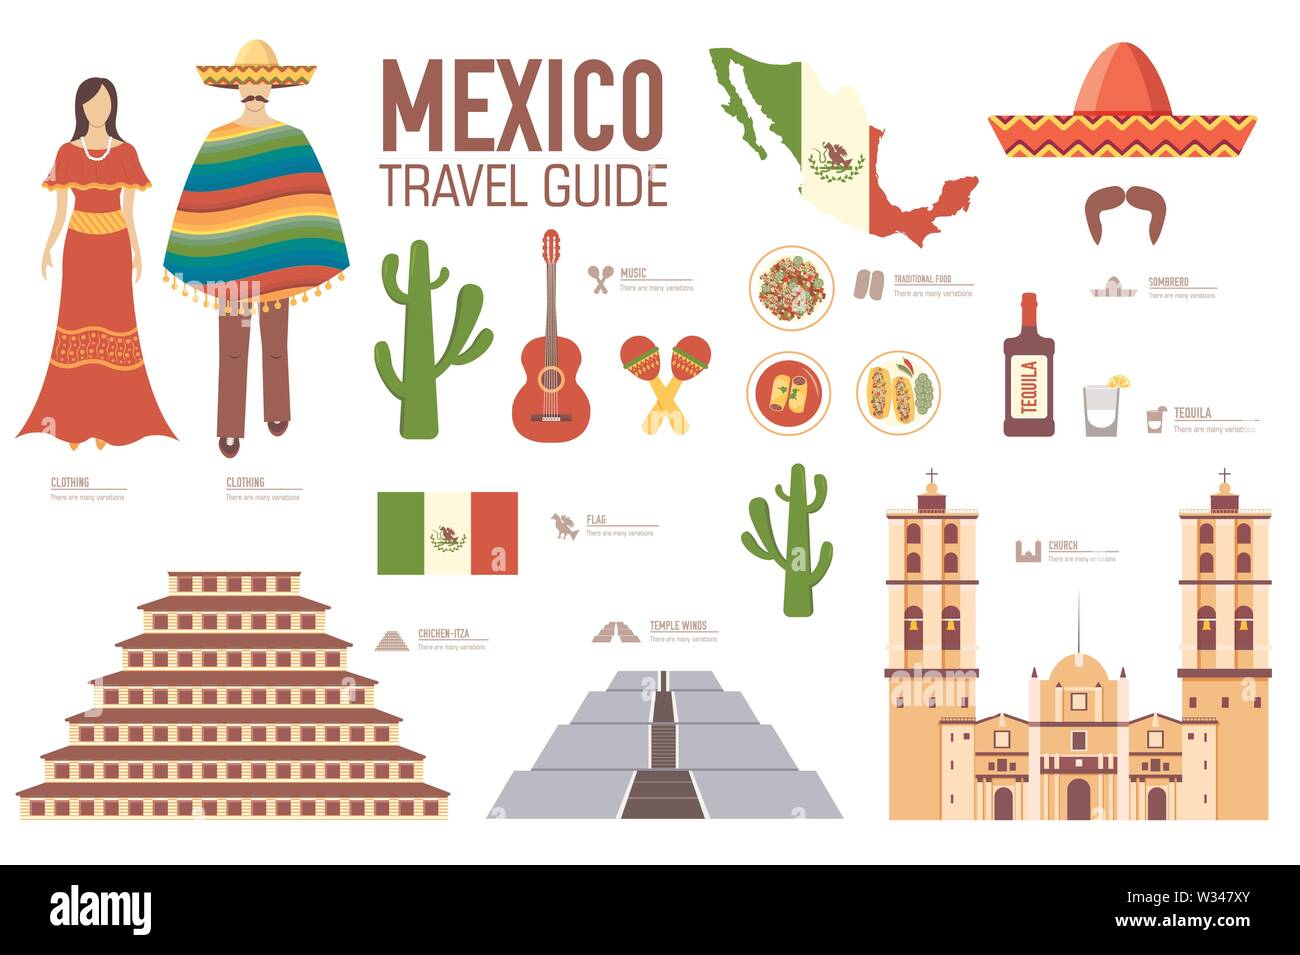 Mexico travel guide template. Set of mexicana landmarks, cuisine, traditions flat icons, pictograms on white. Sightseeing attractions and cultural sym - Stock Image